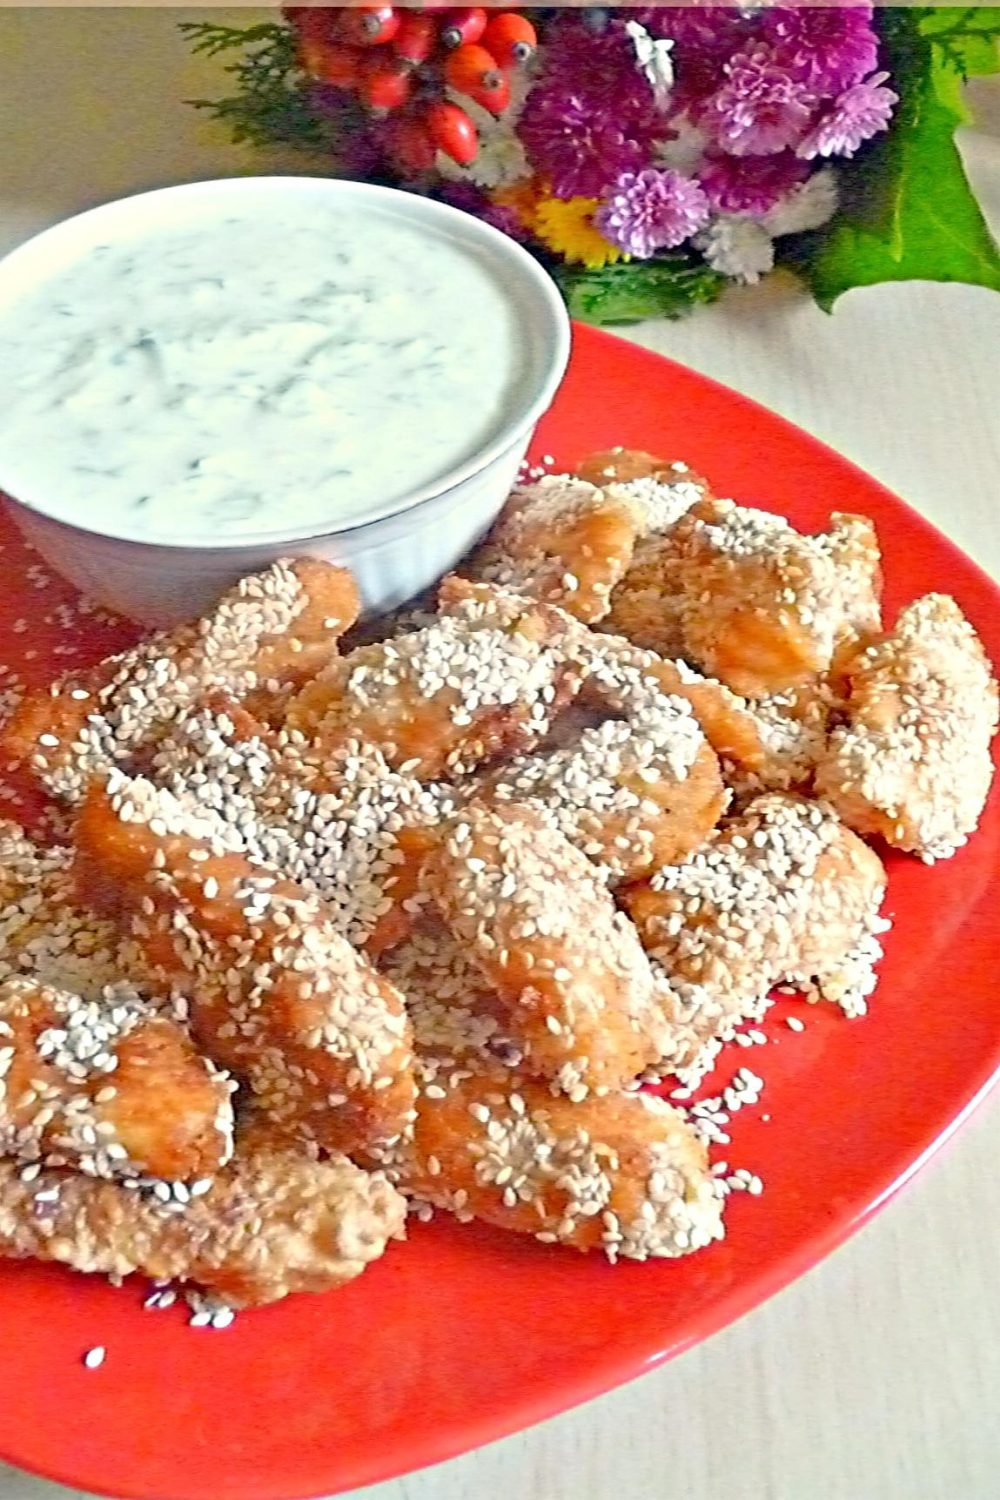 shanghai chicken with sesame seeds and tzatziki sauce